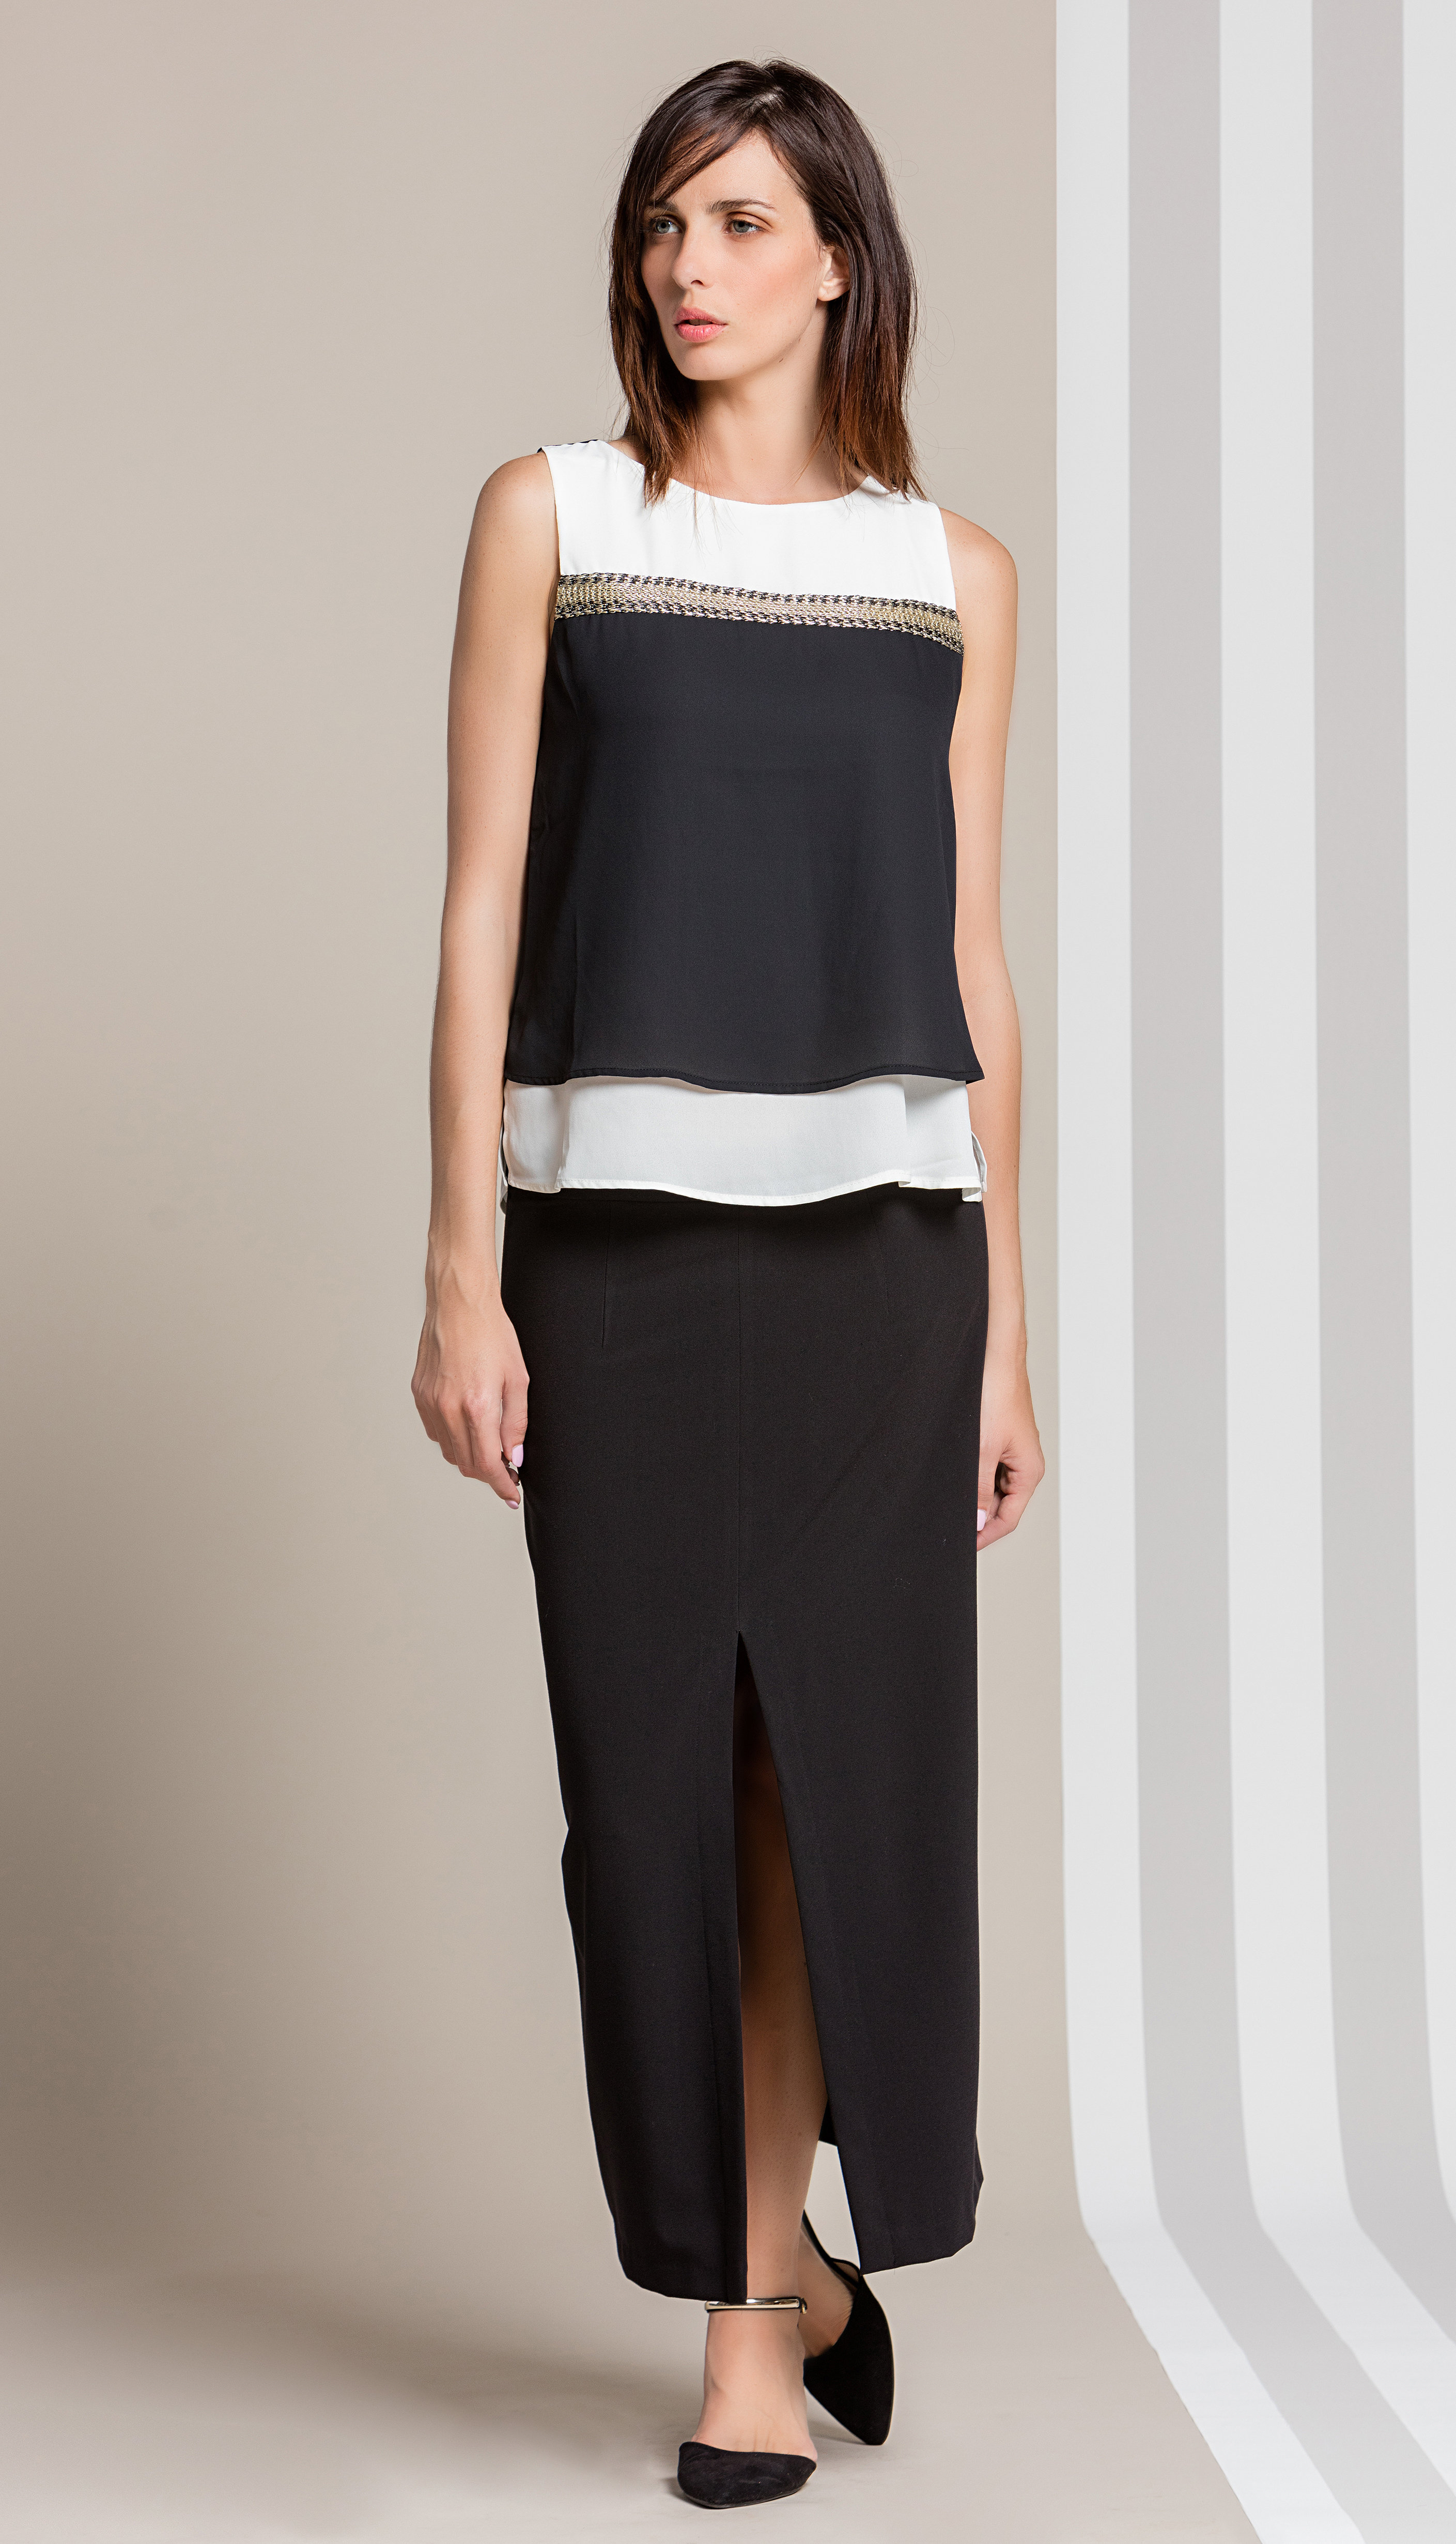 Paul Brial: Waves Colorblock Bling Tunic SOLD OUT